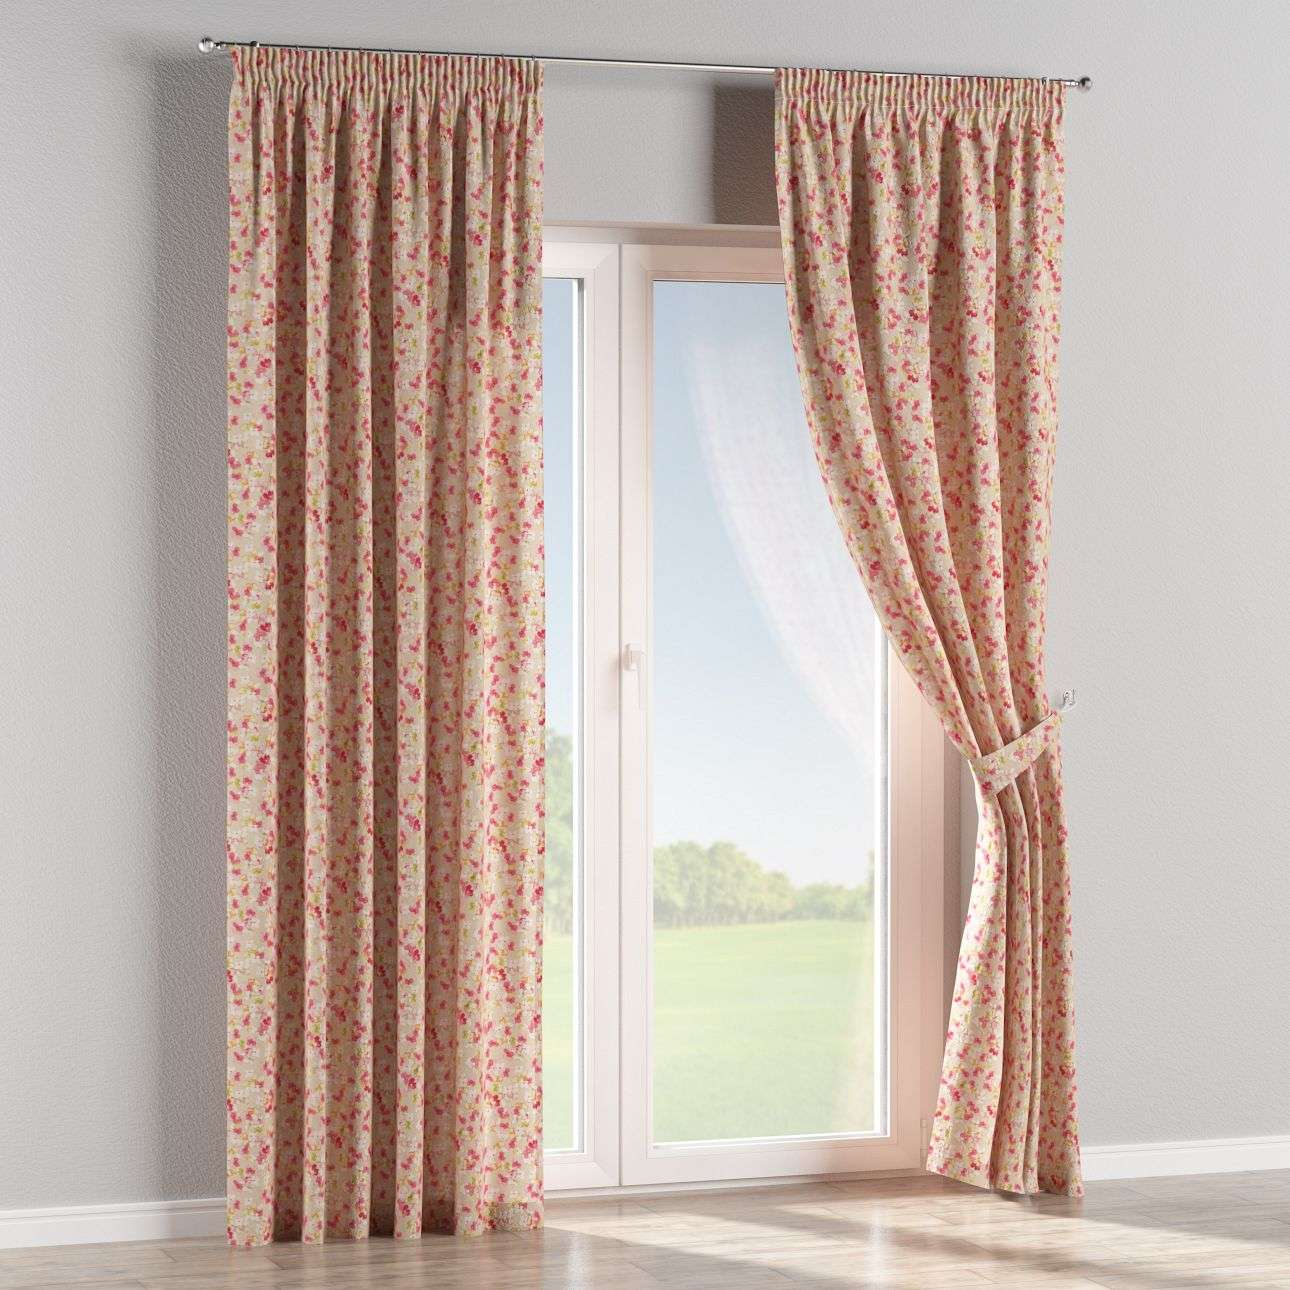 Pencil pleat curtains in collection Londres, fabric: 140-47